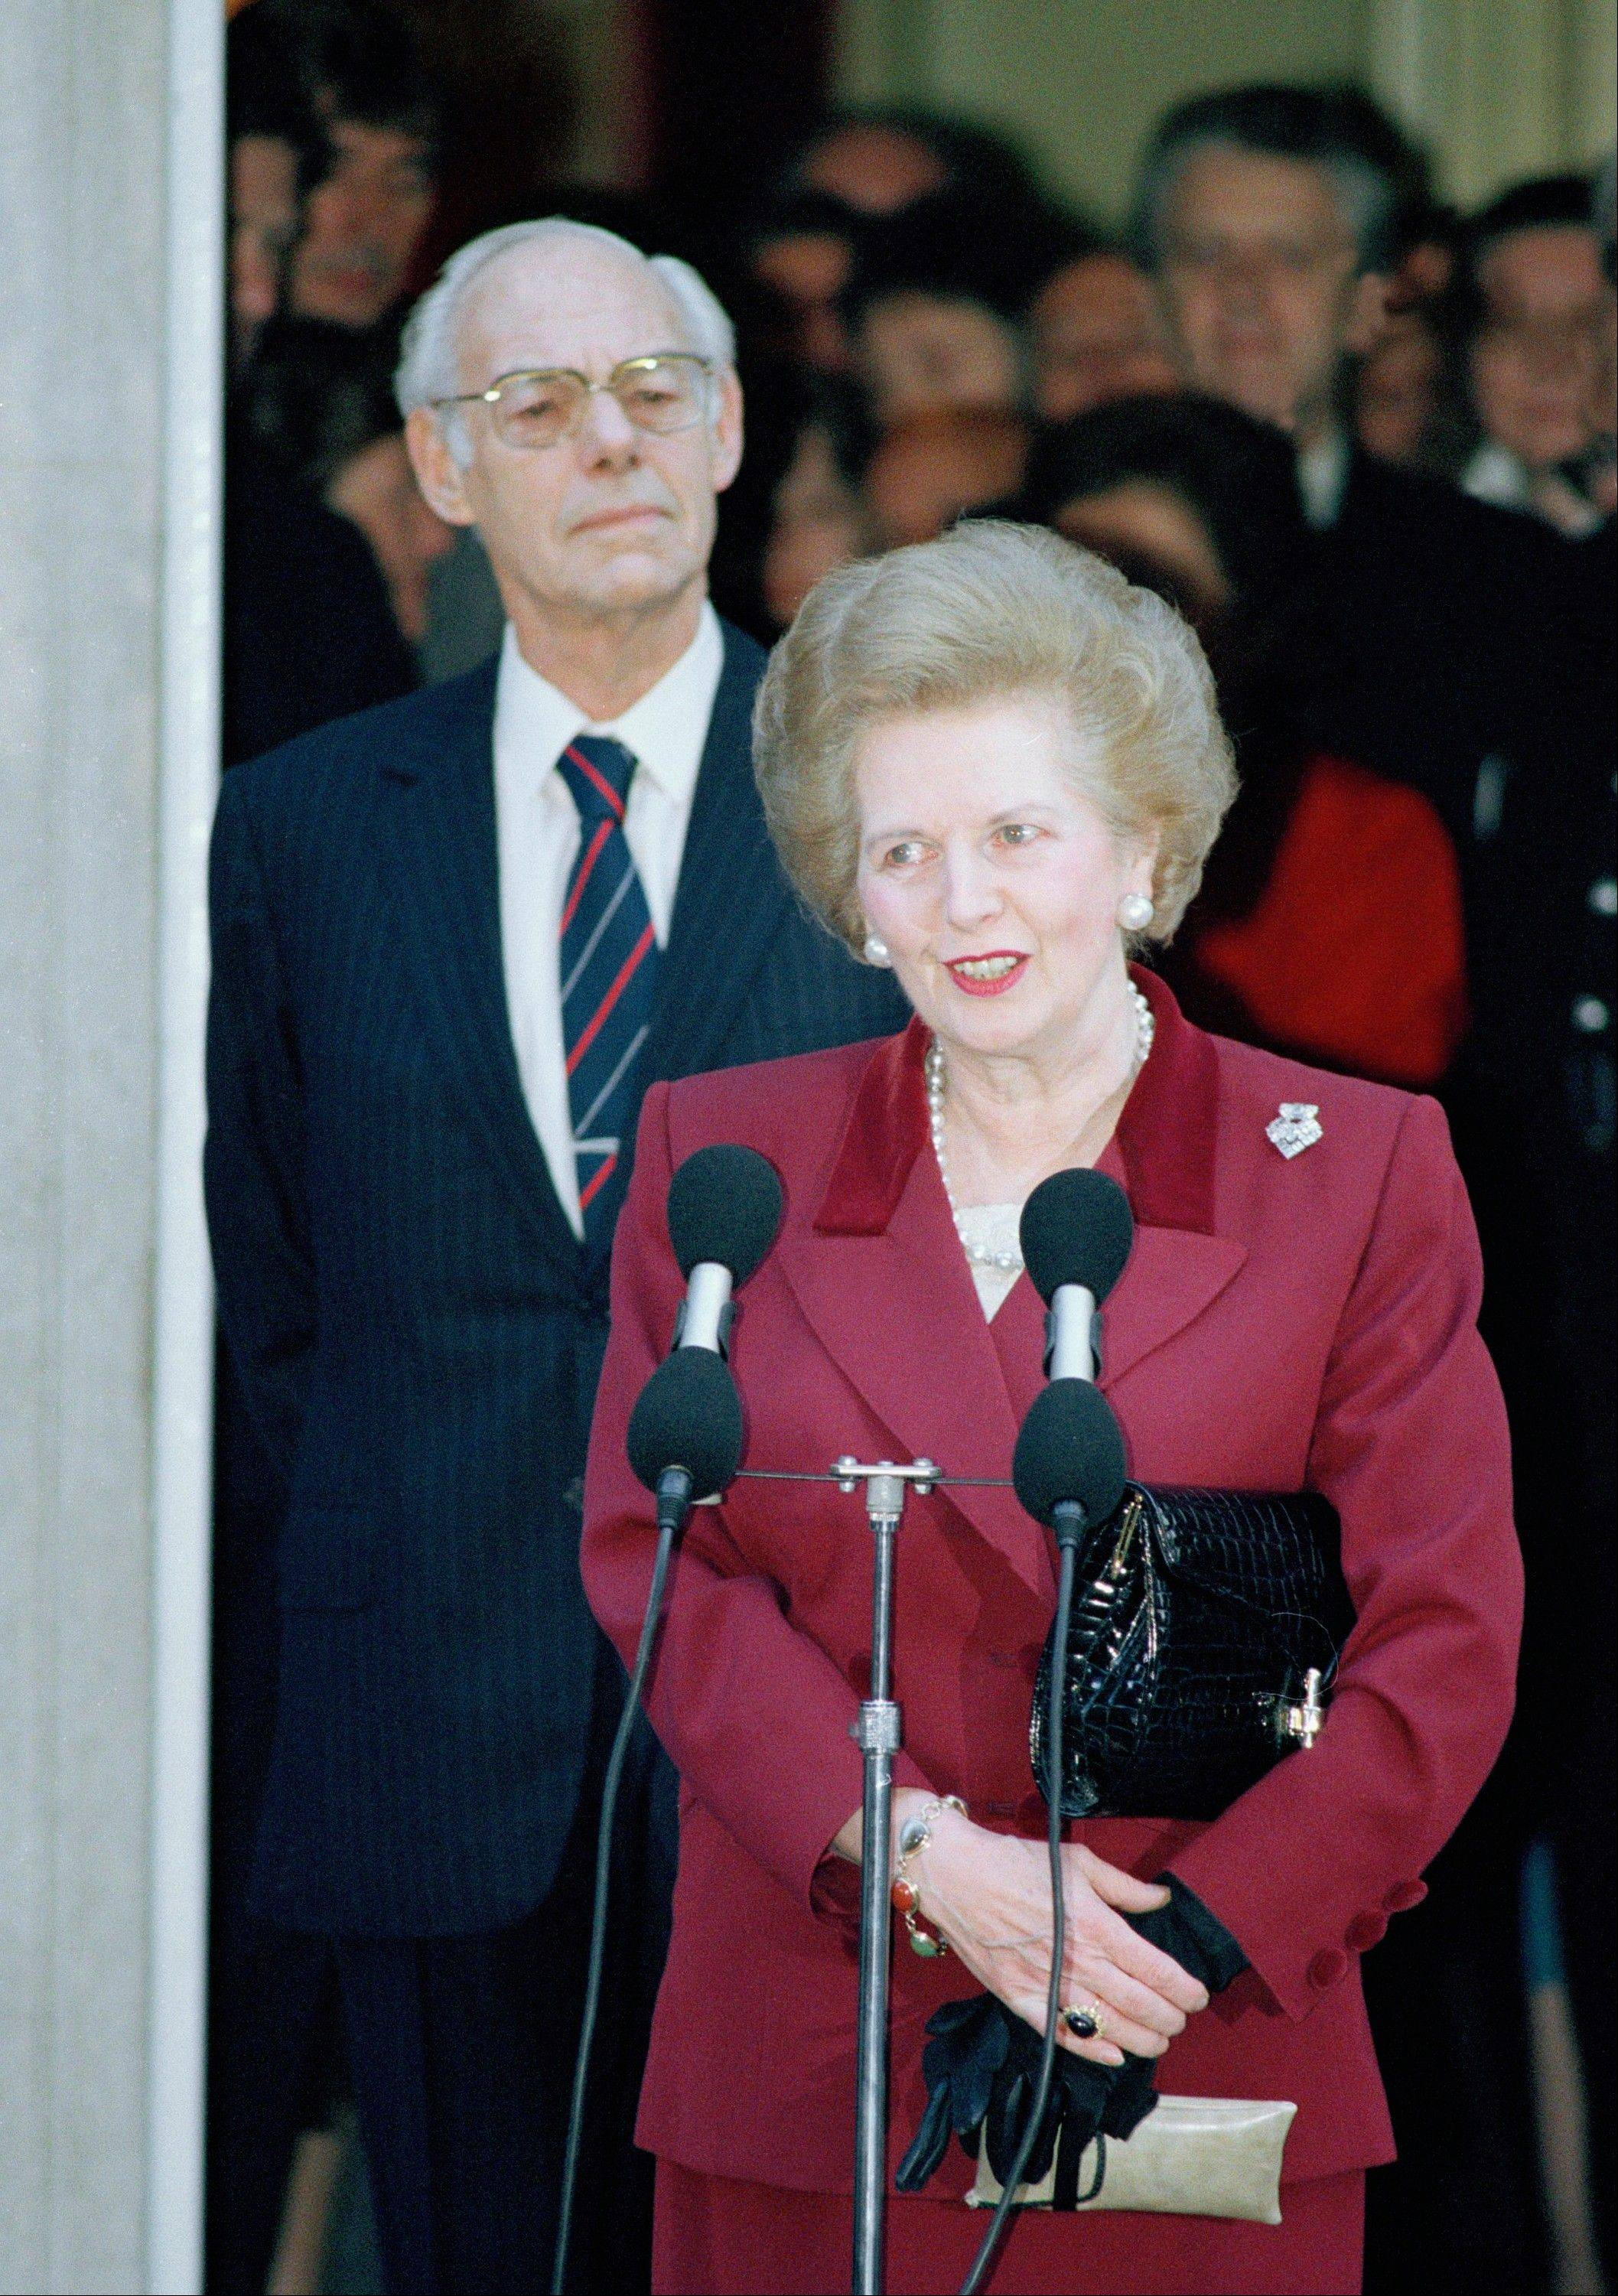 Margaret Thatcher makes a statement to reporters as Denis Thatcher listens, as she leaves No. 10 Downing Street, Westminster in a Wednesday, Nov. 28, 1990 file photo, for Buckingham Palace where she will resign as Prime Minister to Queen Elizabeth II. Thatchers former spokesman, Tim Bell, said that the former British Prime Minister Margaret Thatcher had died Monday morning, April 8, 2013, of a stroke. She was 87.